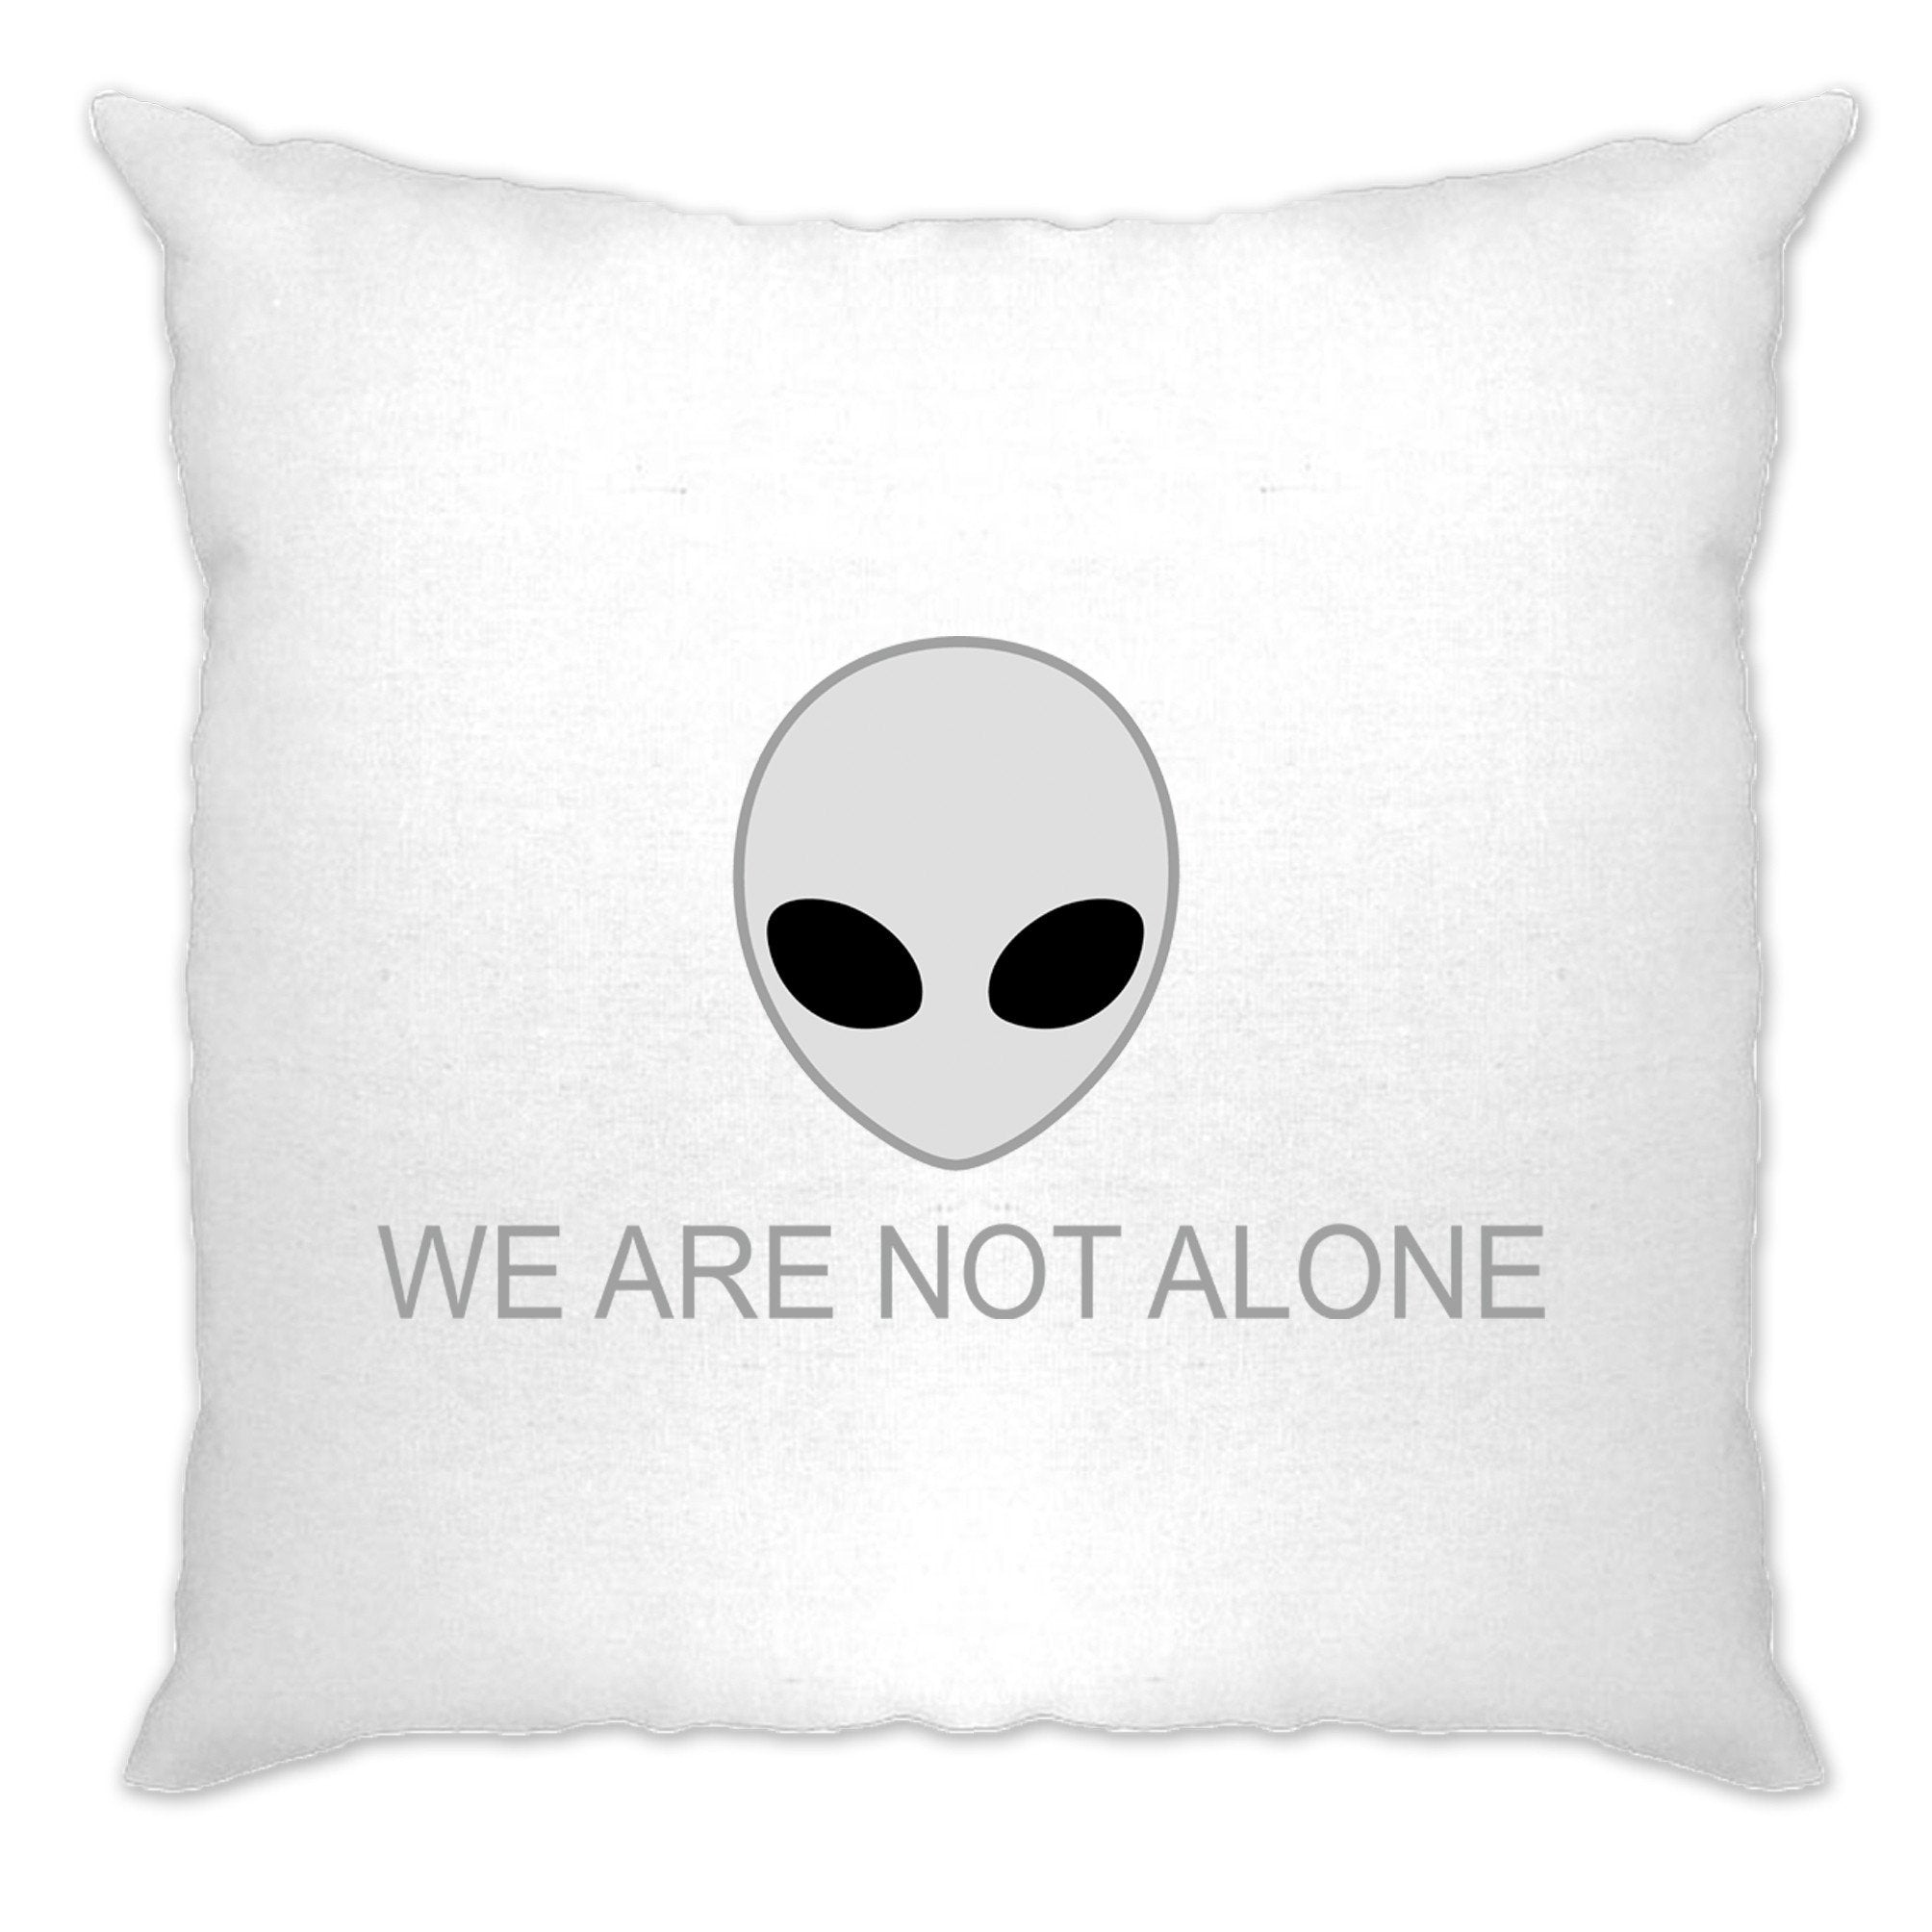 Nerdy Alien Head Cushion Cover We Are Not Alone Slogan